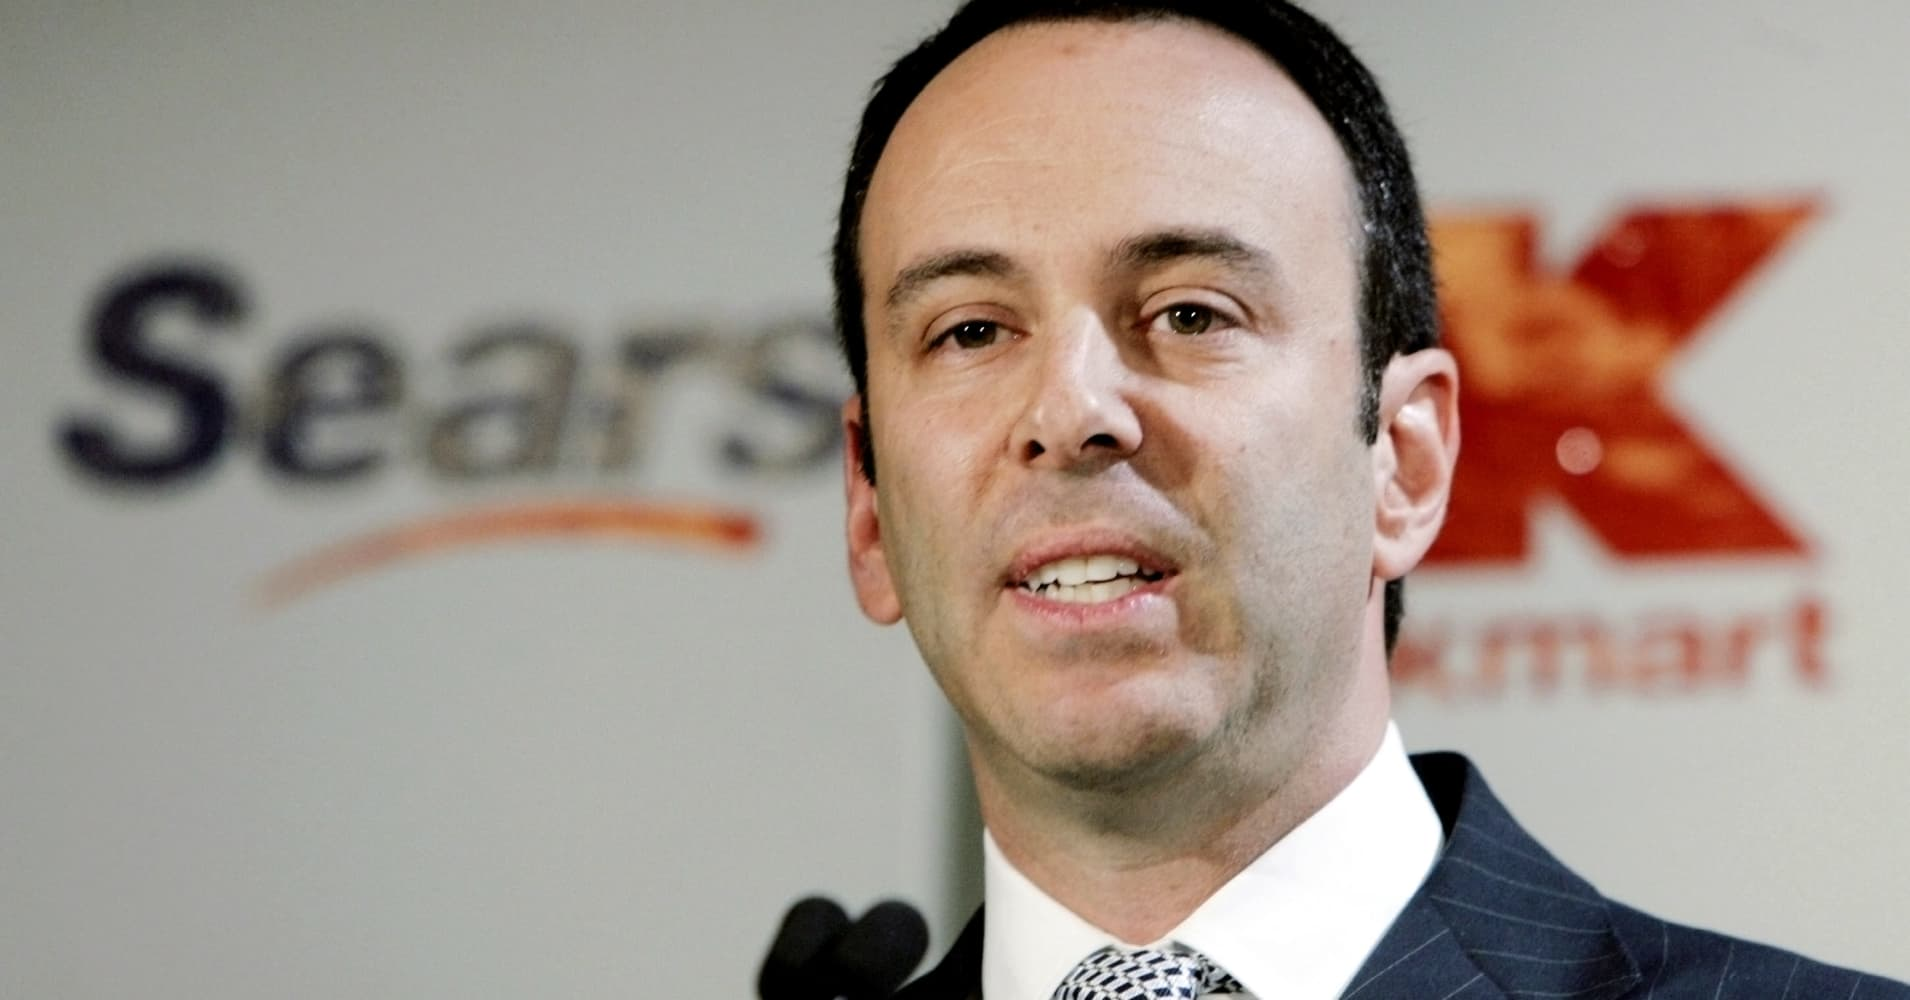 cnbc.com - Lauren Hirsch - Sears sues ex-CEO Lampert, Treasury's Mnuchin, others for 'thefts' of billions from bankrupt retailer